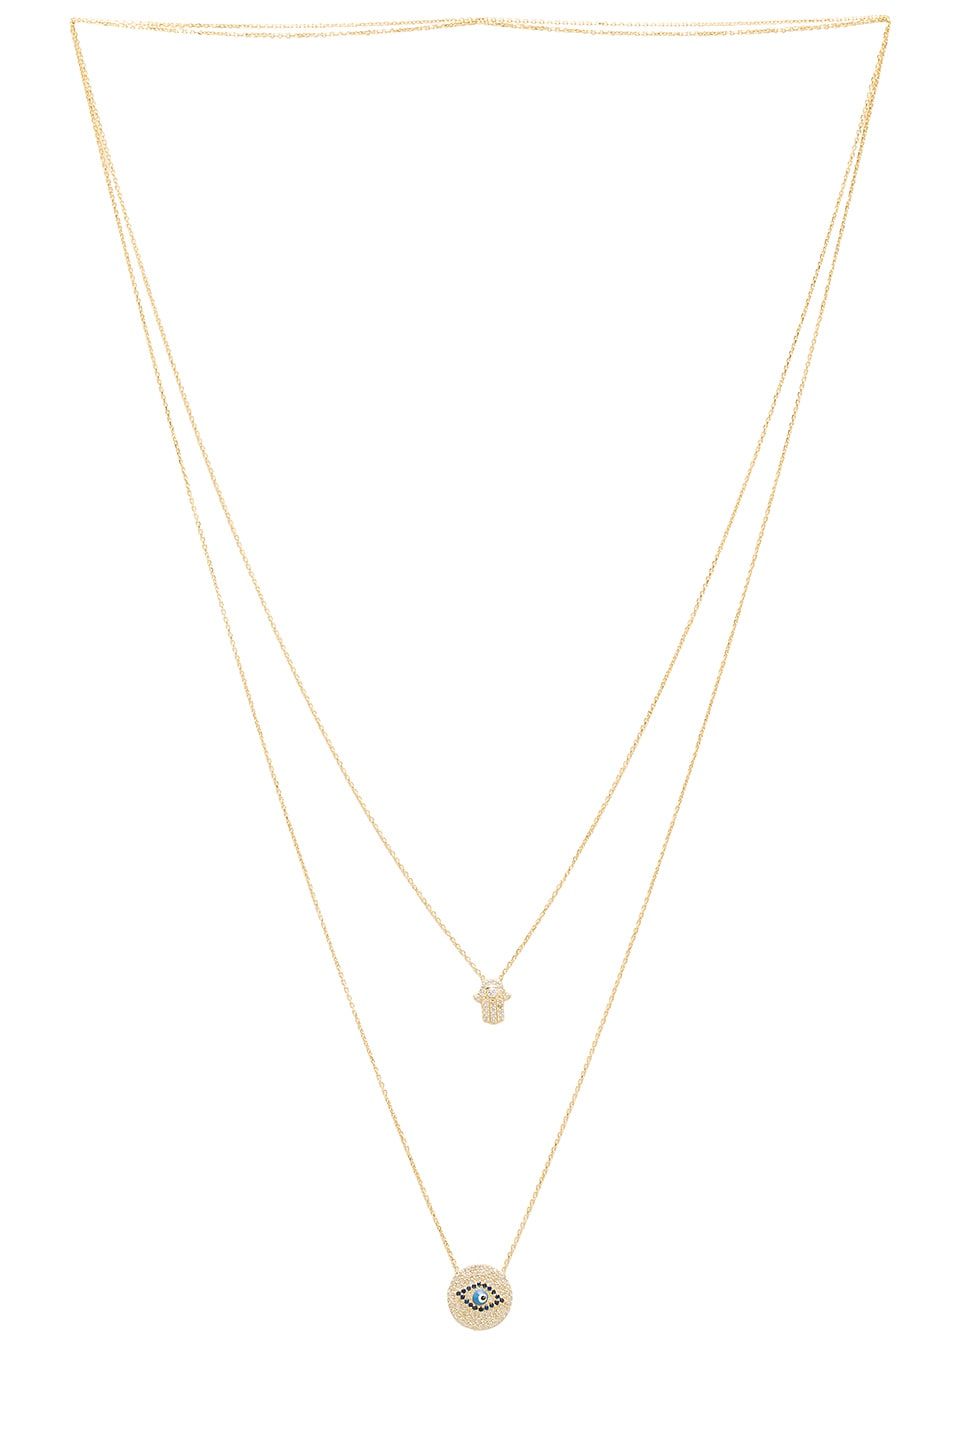 joolz by Martha Calvo Protection Scapulary Necklace in Gold Vermeil